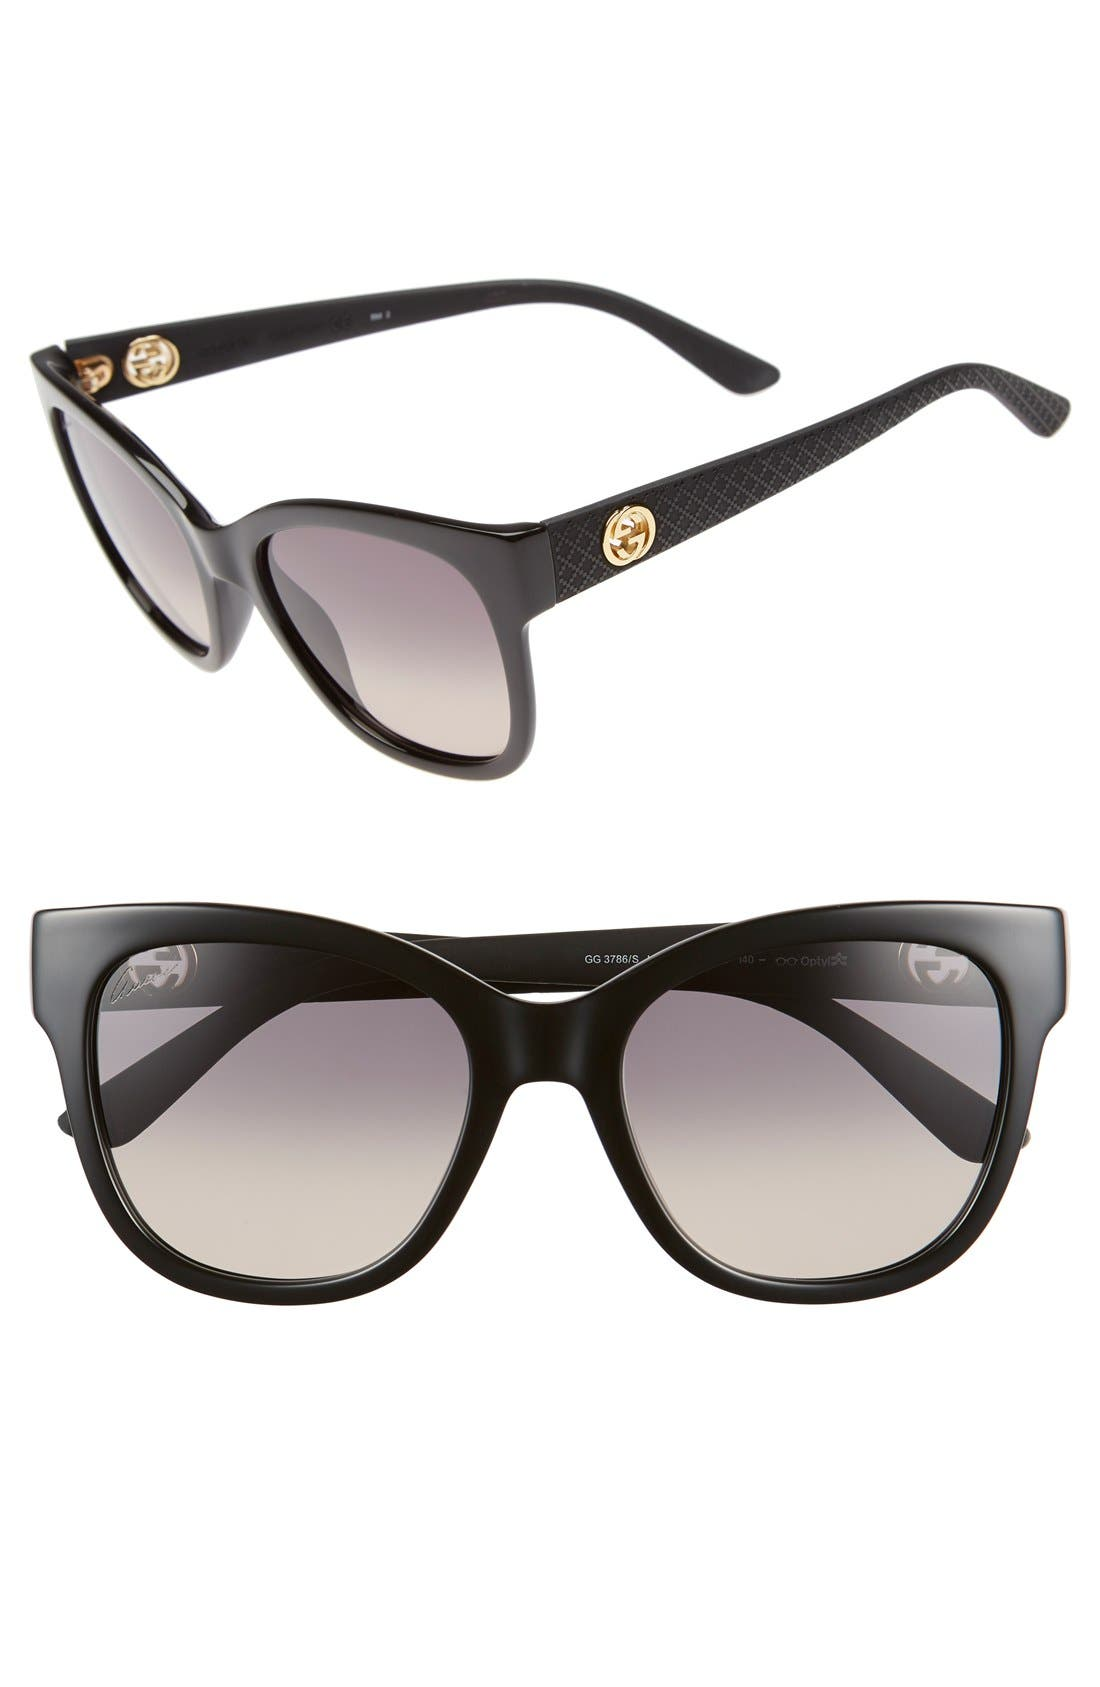 Alternate Image 1 Selected - Gucci 54mm Sunglasses